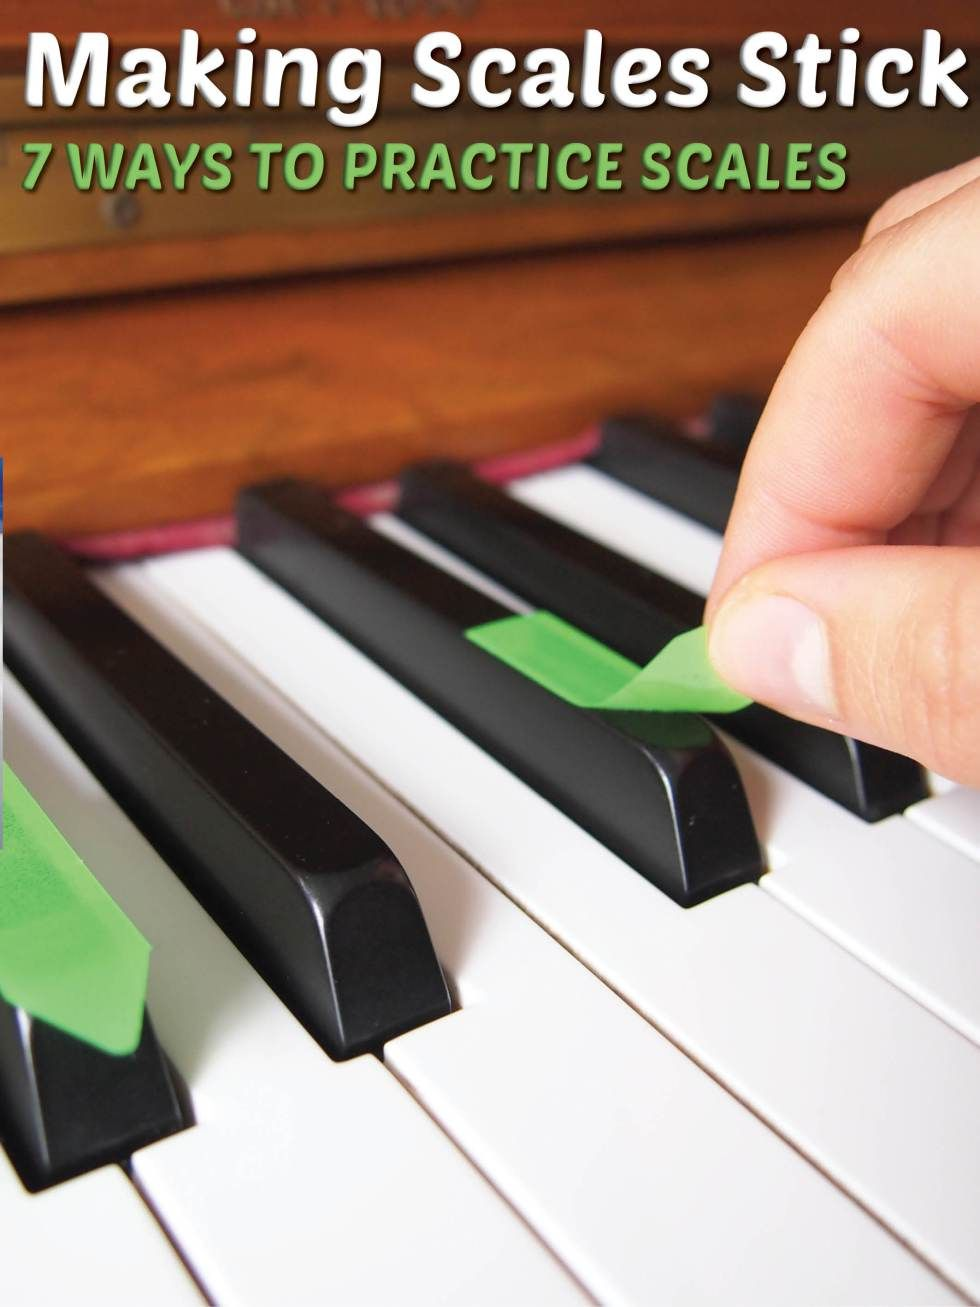 Making Scales Stick 7 Different Ways to Practice Scales